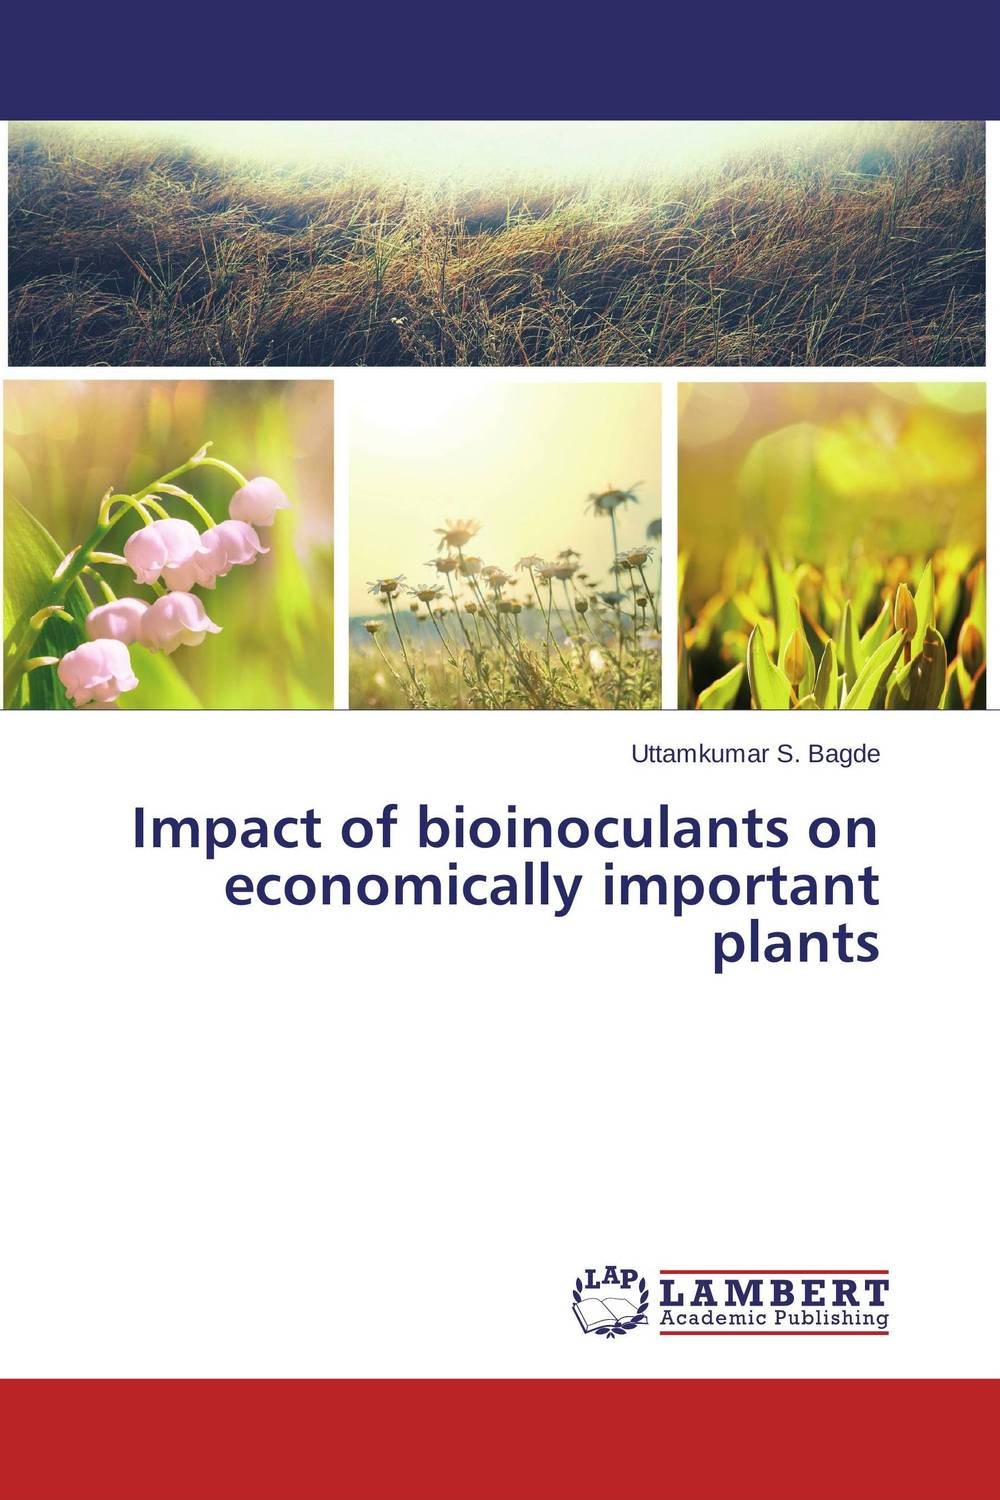 Impact of bioinoculants on economically important plants